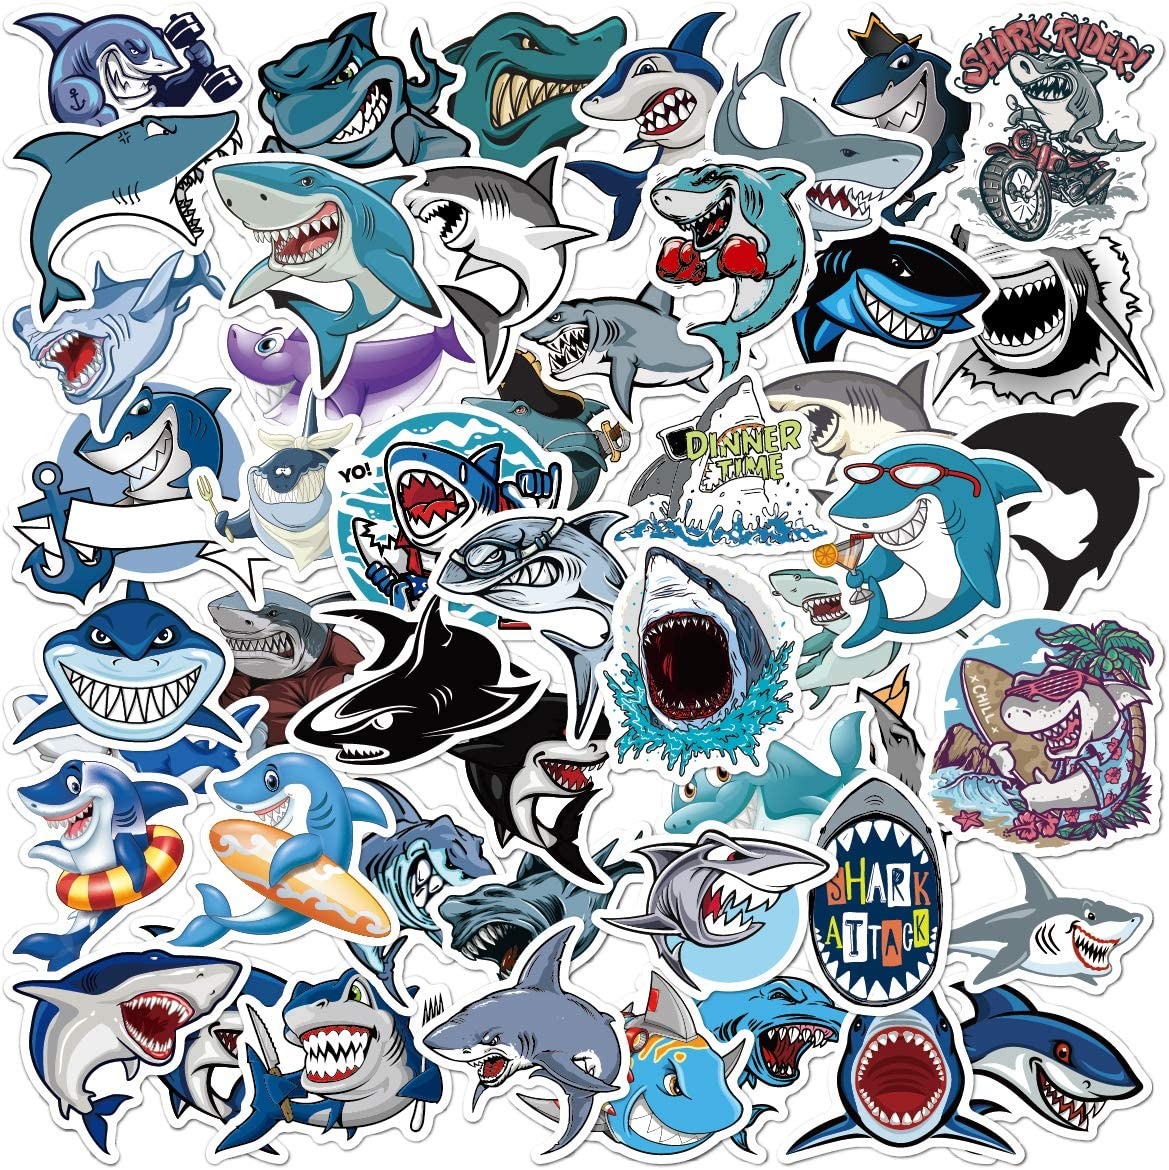 50 Pcs Shark Stickers Shark Decals for Water Bottle Hydro Flask Laptop Luggage Car Bike Bicycle Waterproof Vinyl Stickers Pack